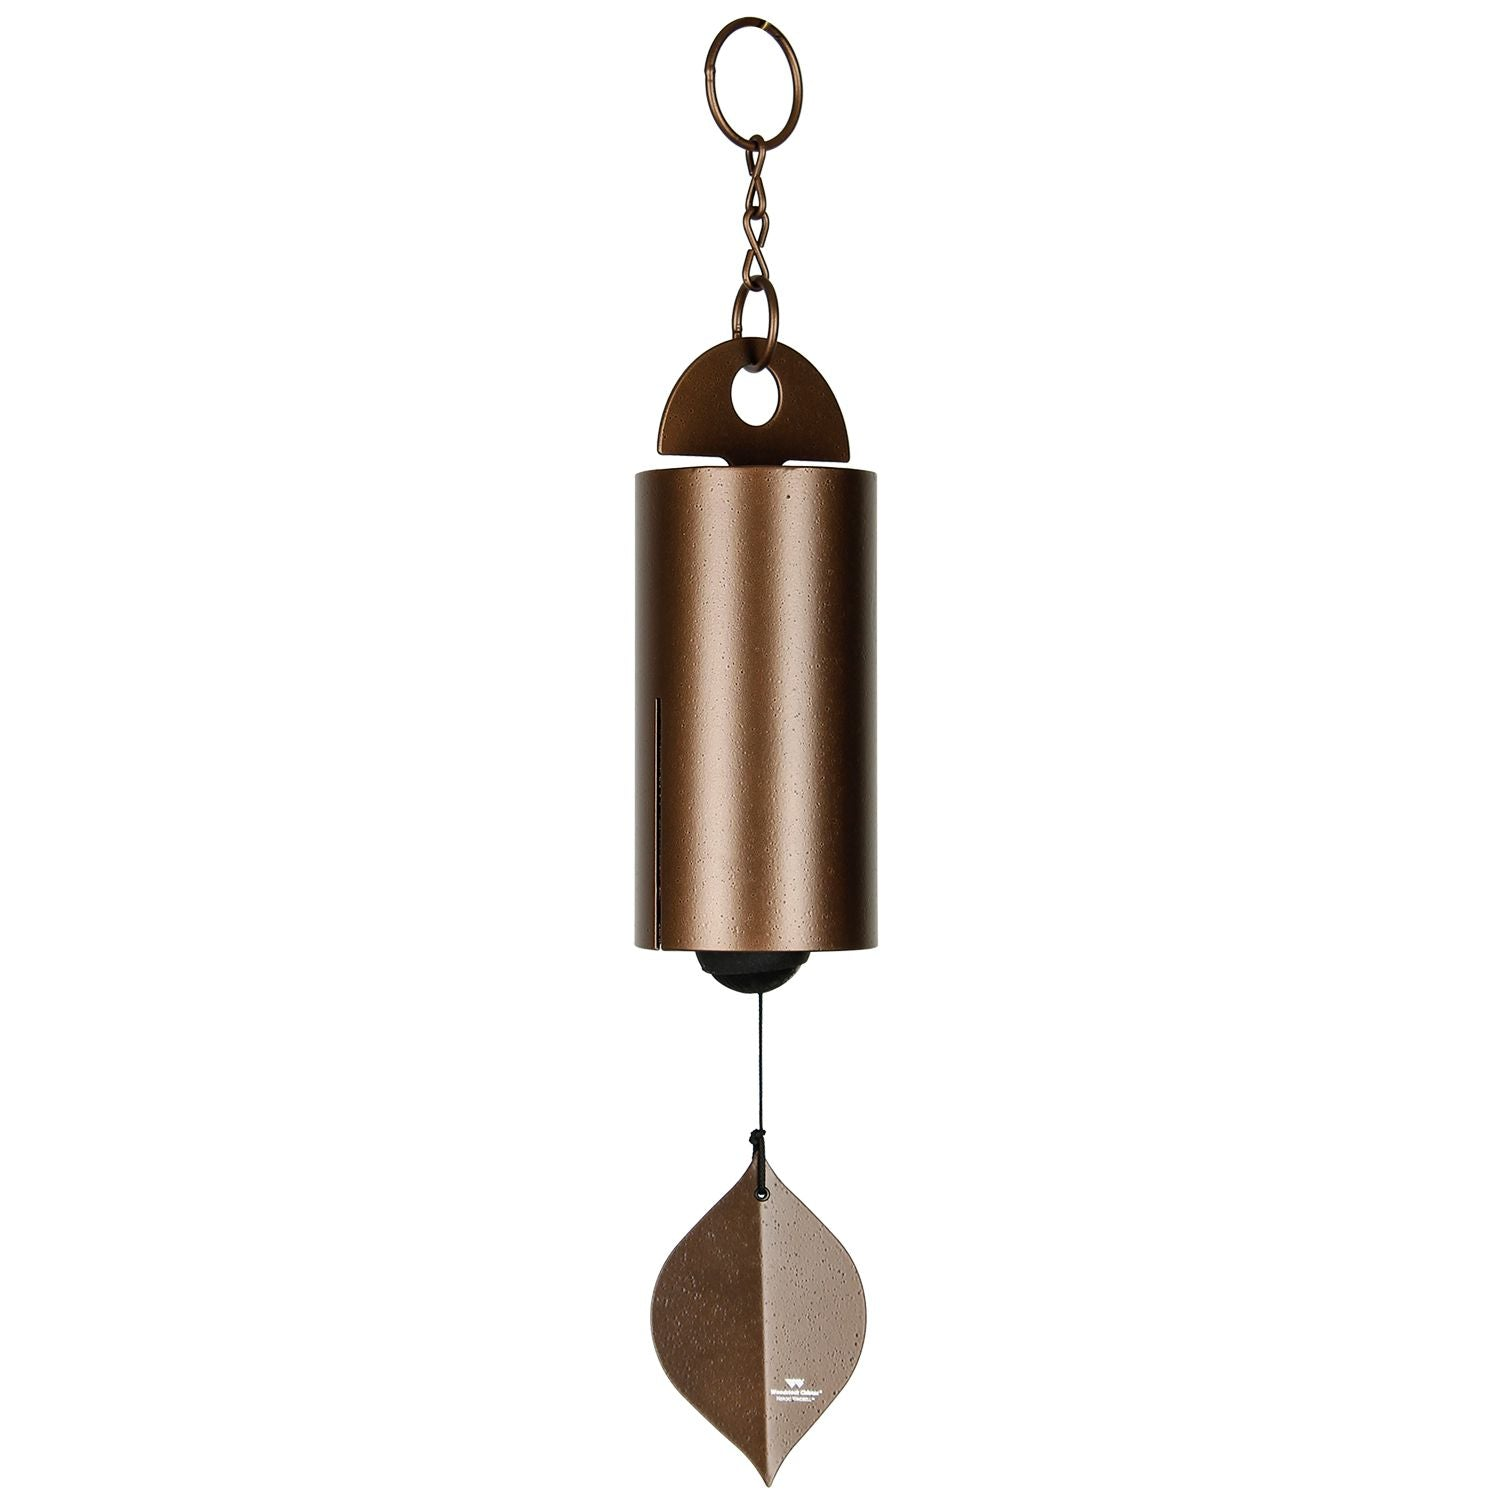 Heroic Windbell - Medium Antique Copper